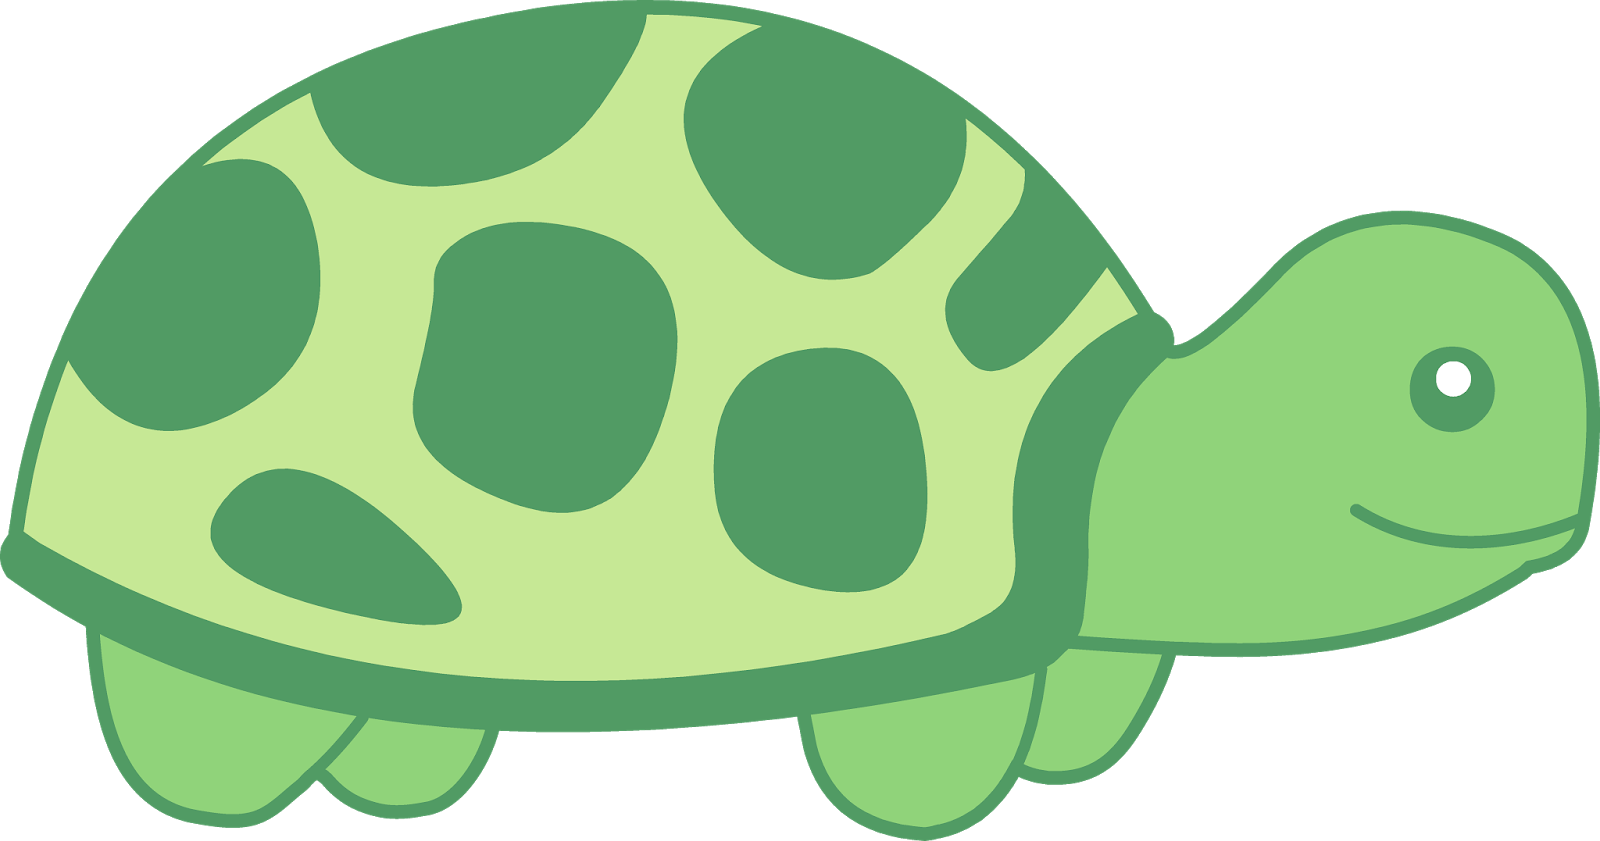 Shell clipart sea turtle. Coloring pages turtles free